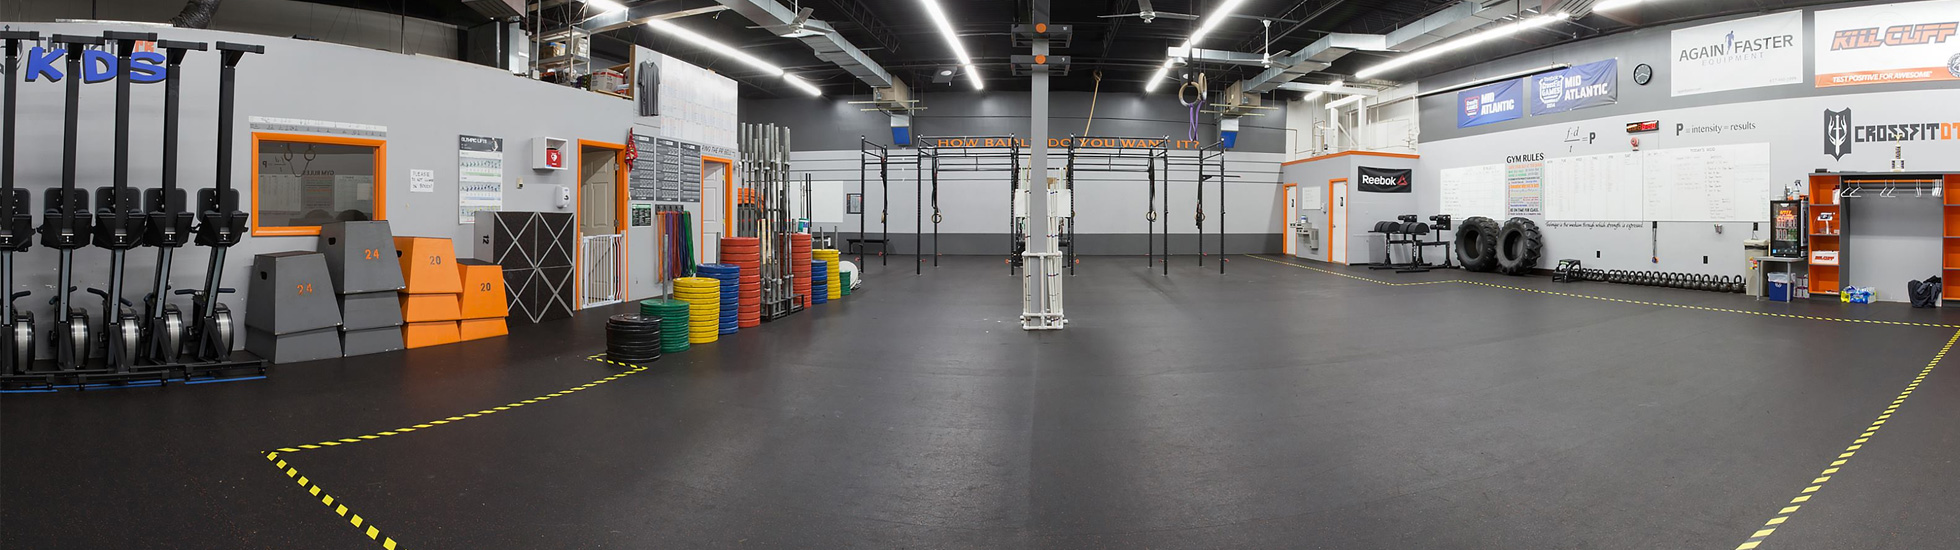 A Gym In Gaithersburg MD That Can Help With Weight loss & Dieting